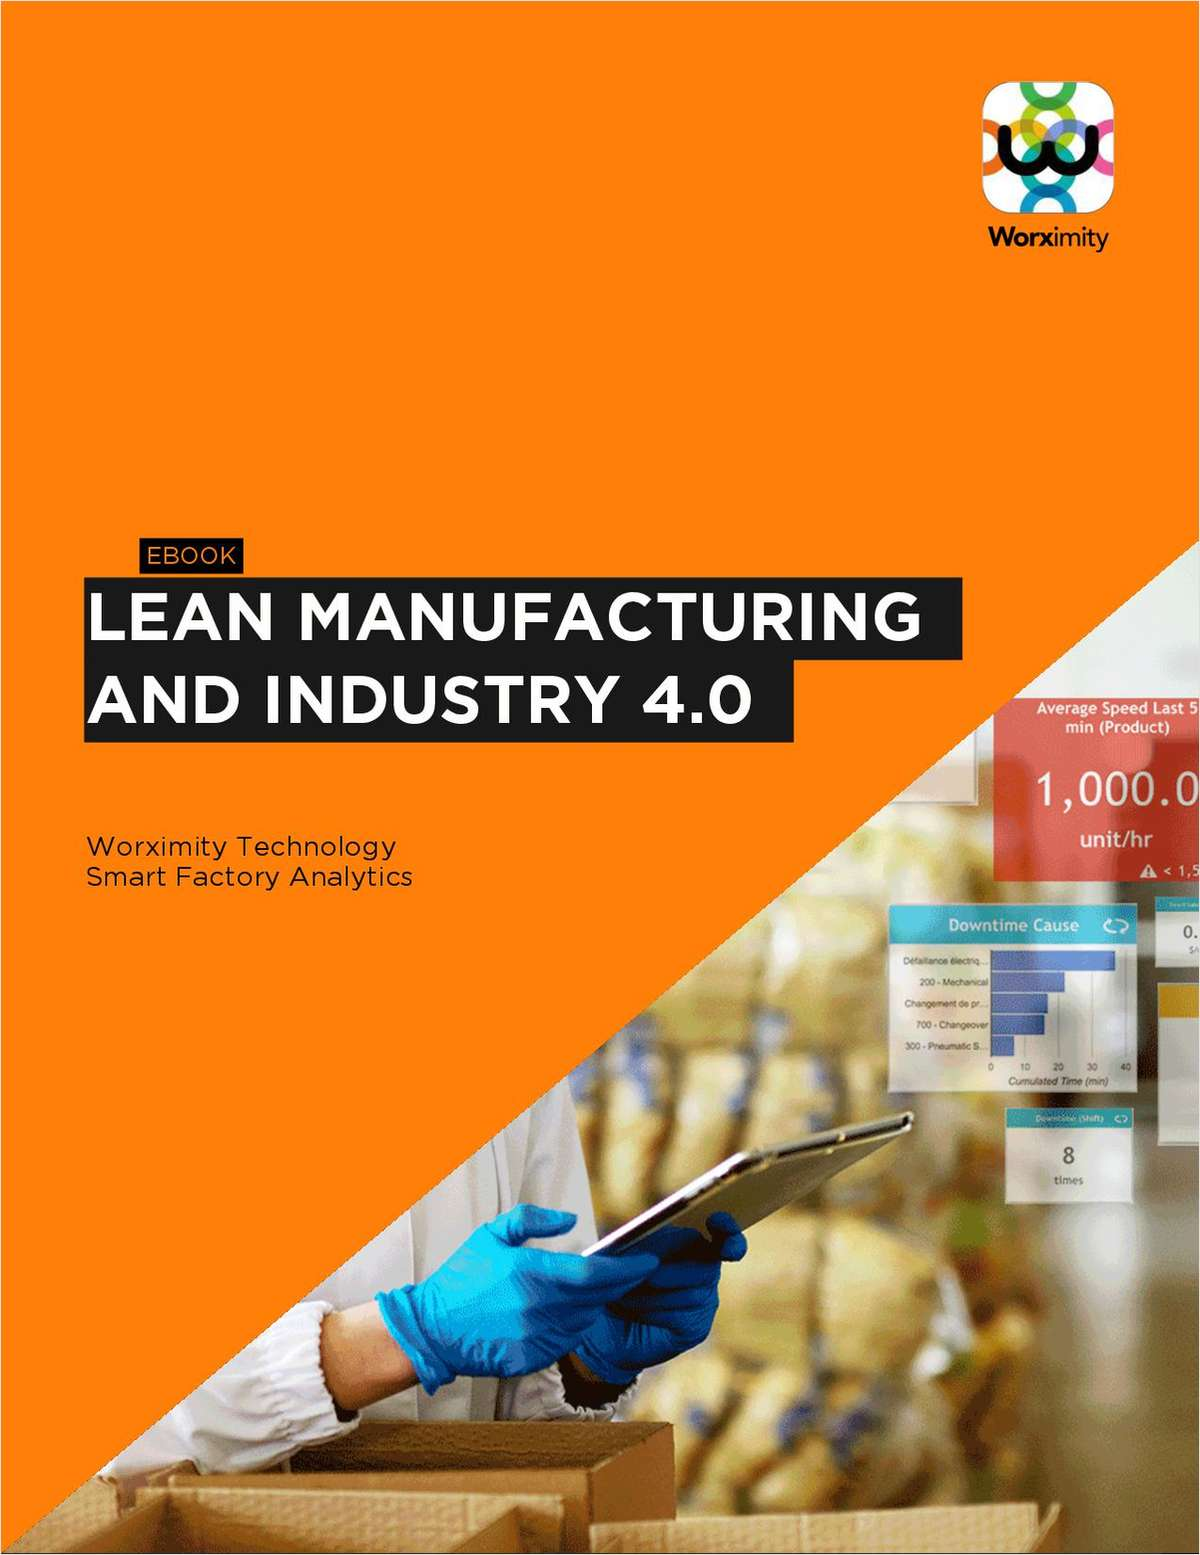 Lean Manufacturing and Industry 4.0 Ebook